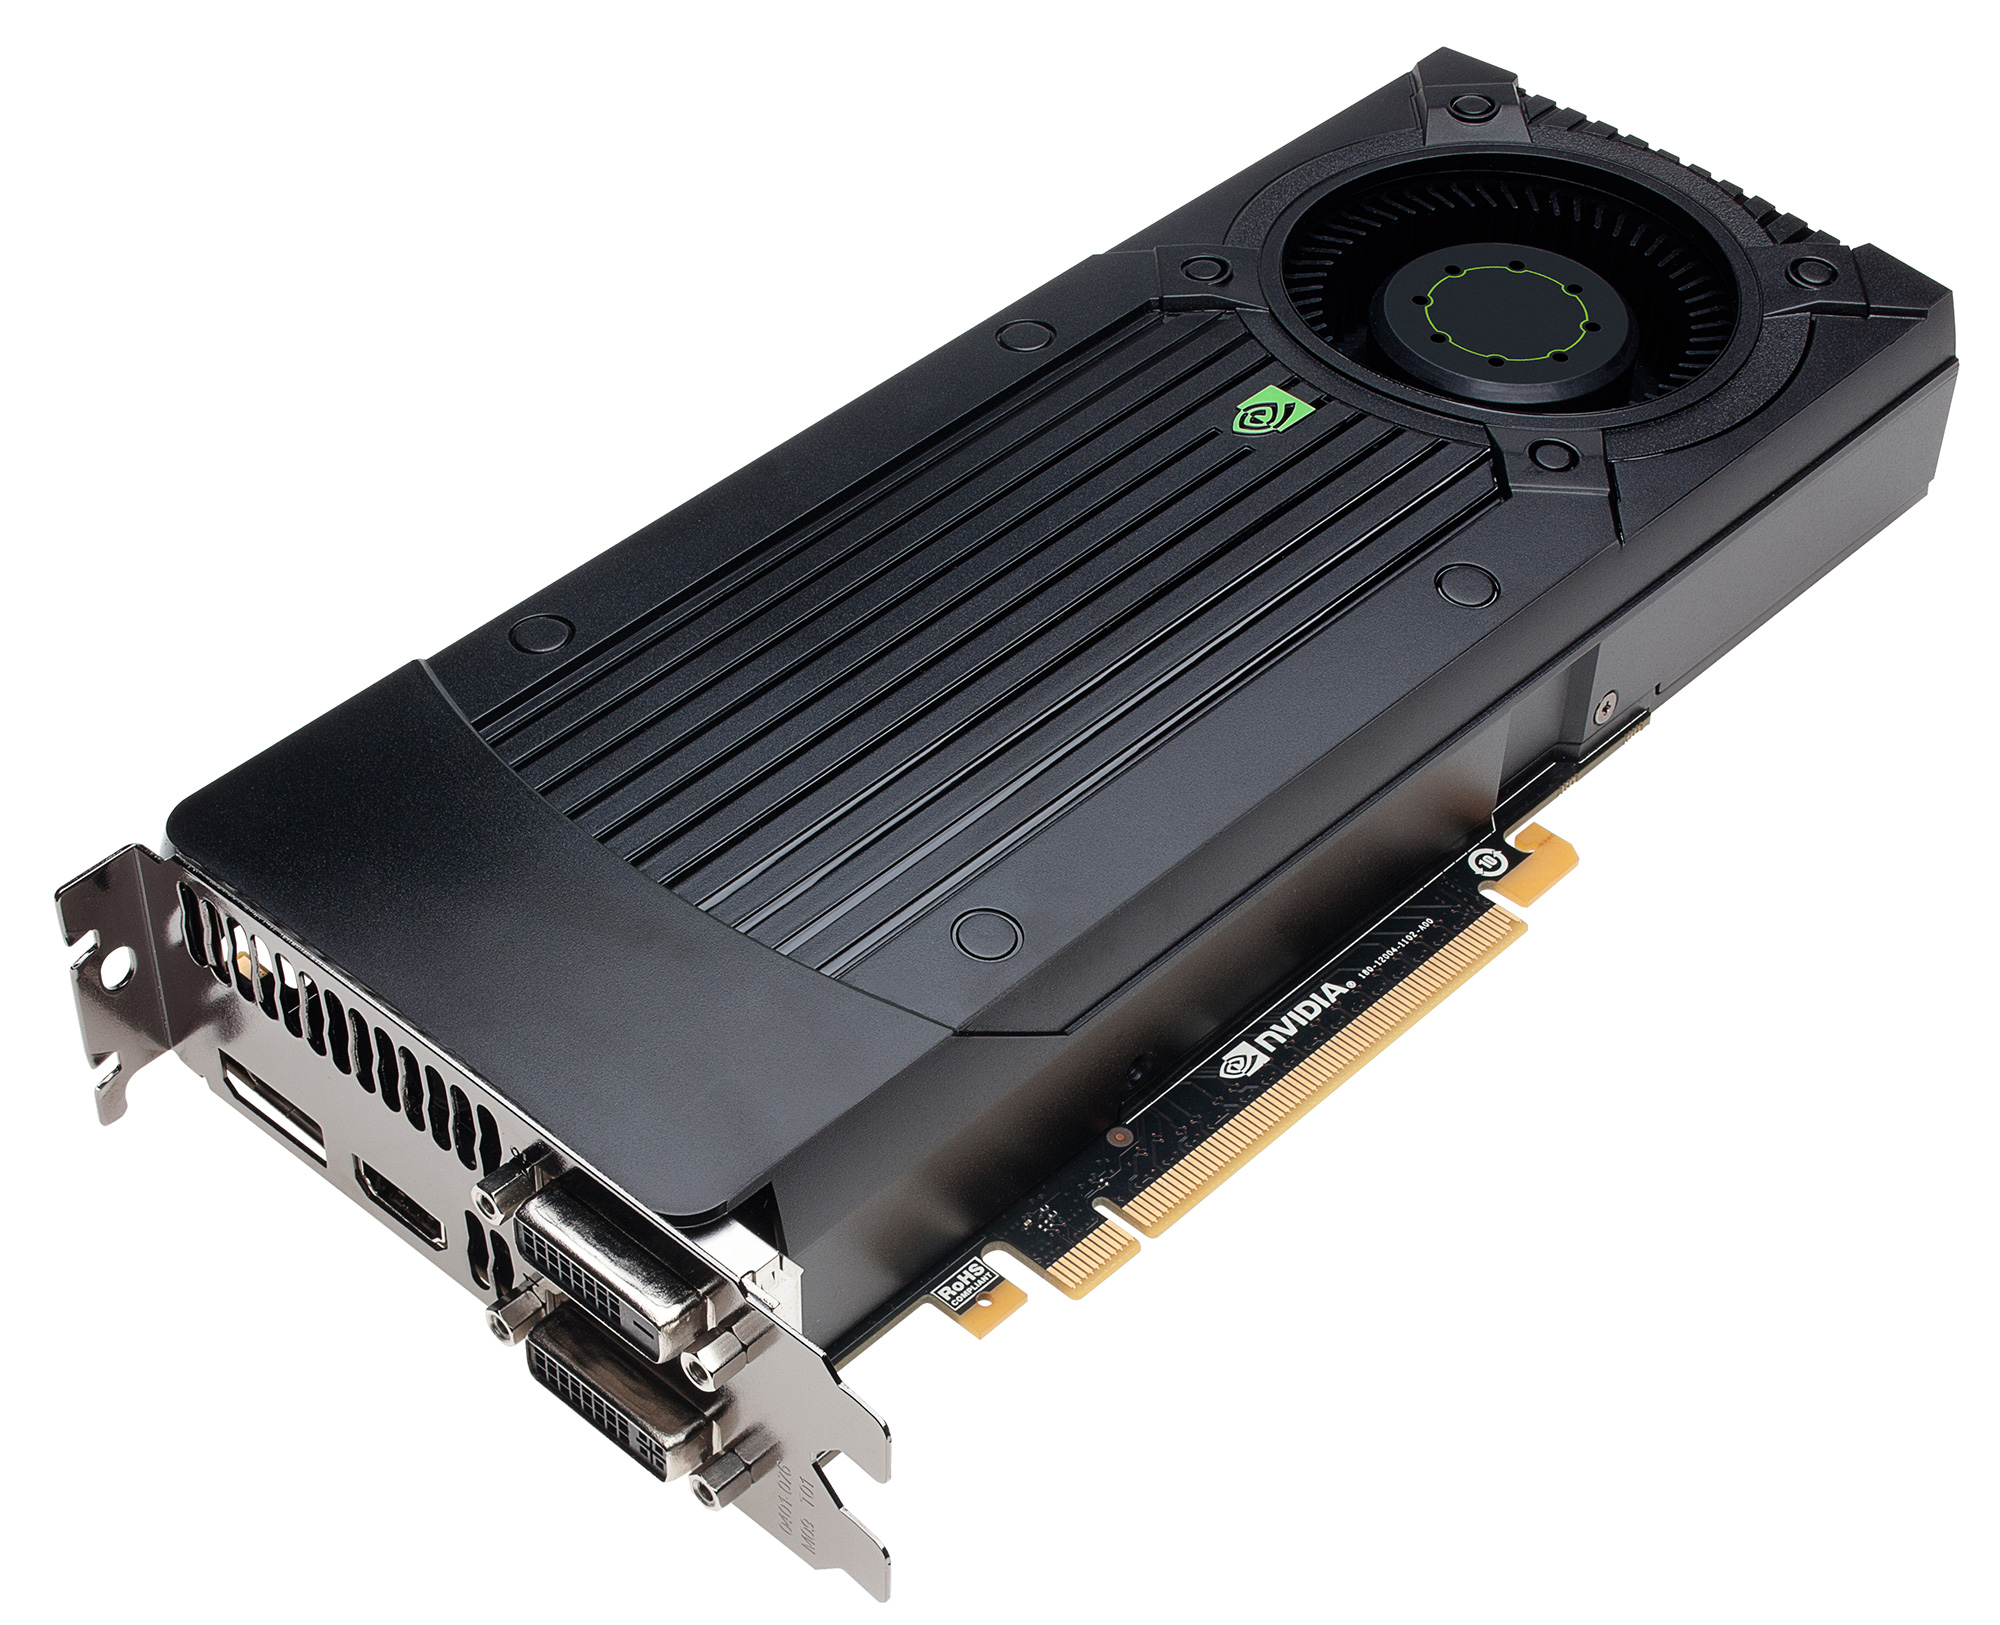 The NVIDIA GeForce GTX 660 Review: GK106 Fills Out The Kepler Family